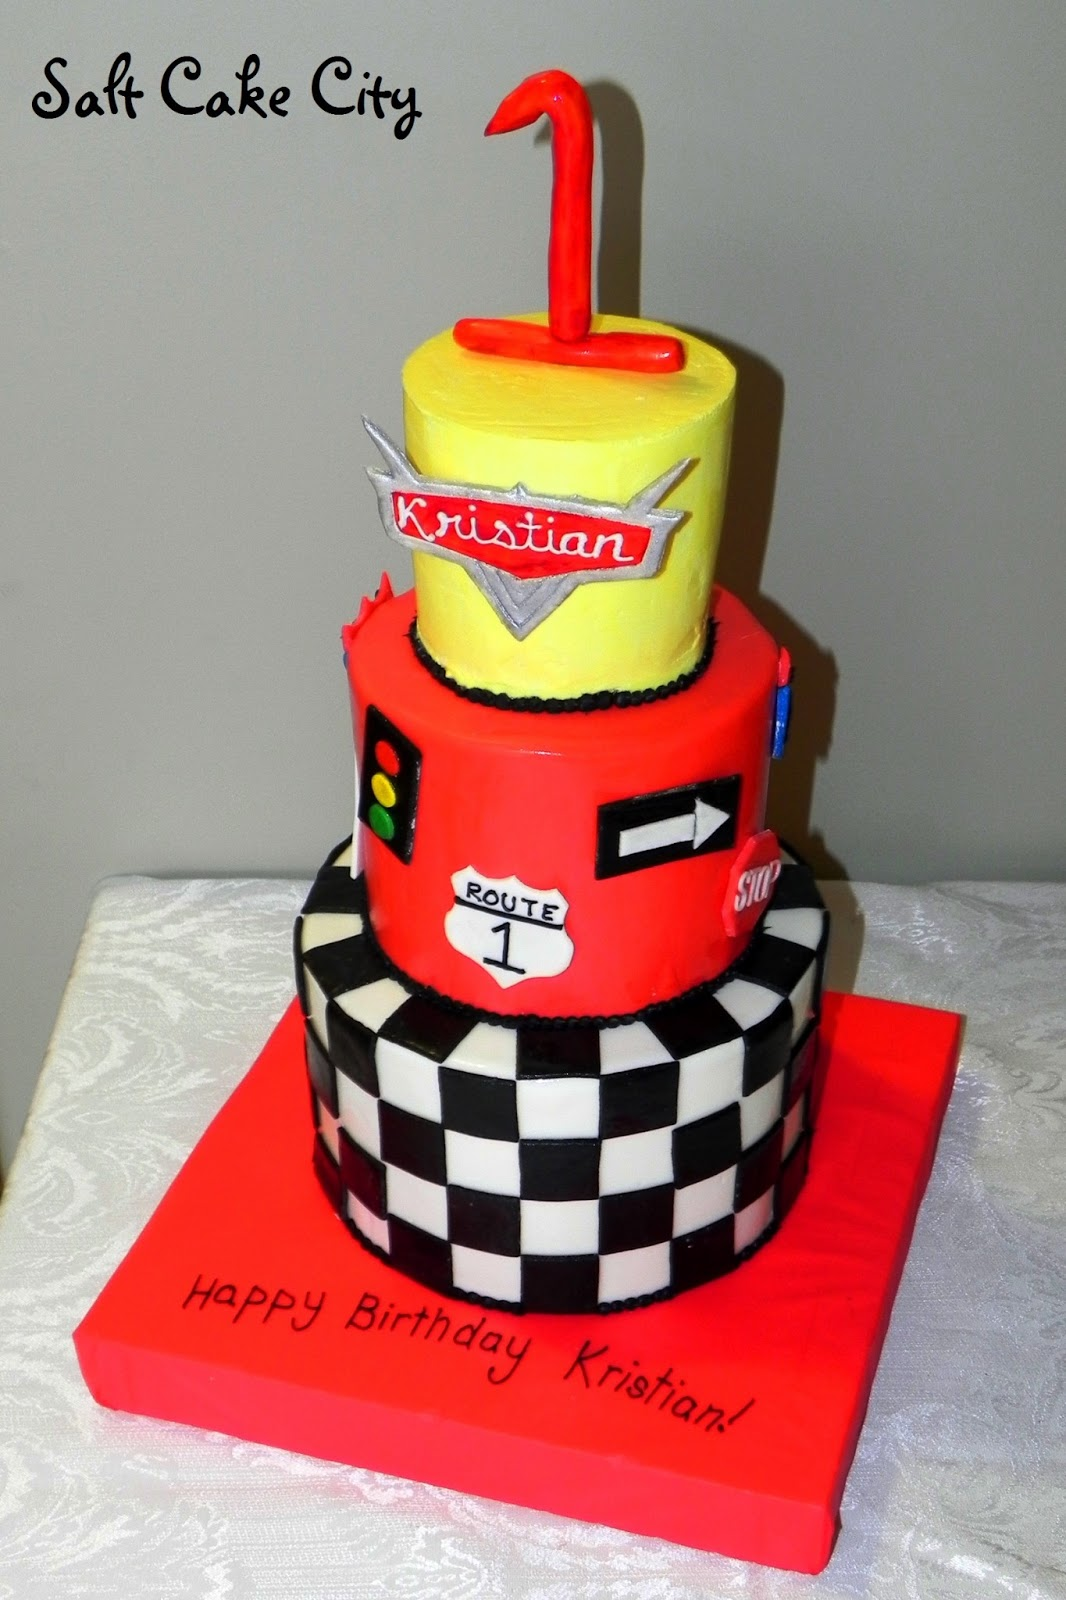 Start Your Engines Cake